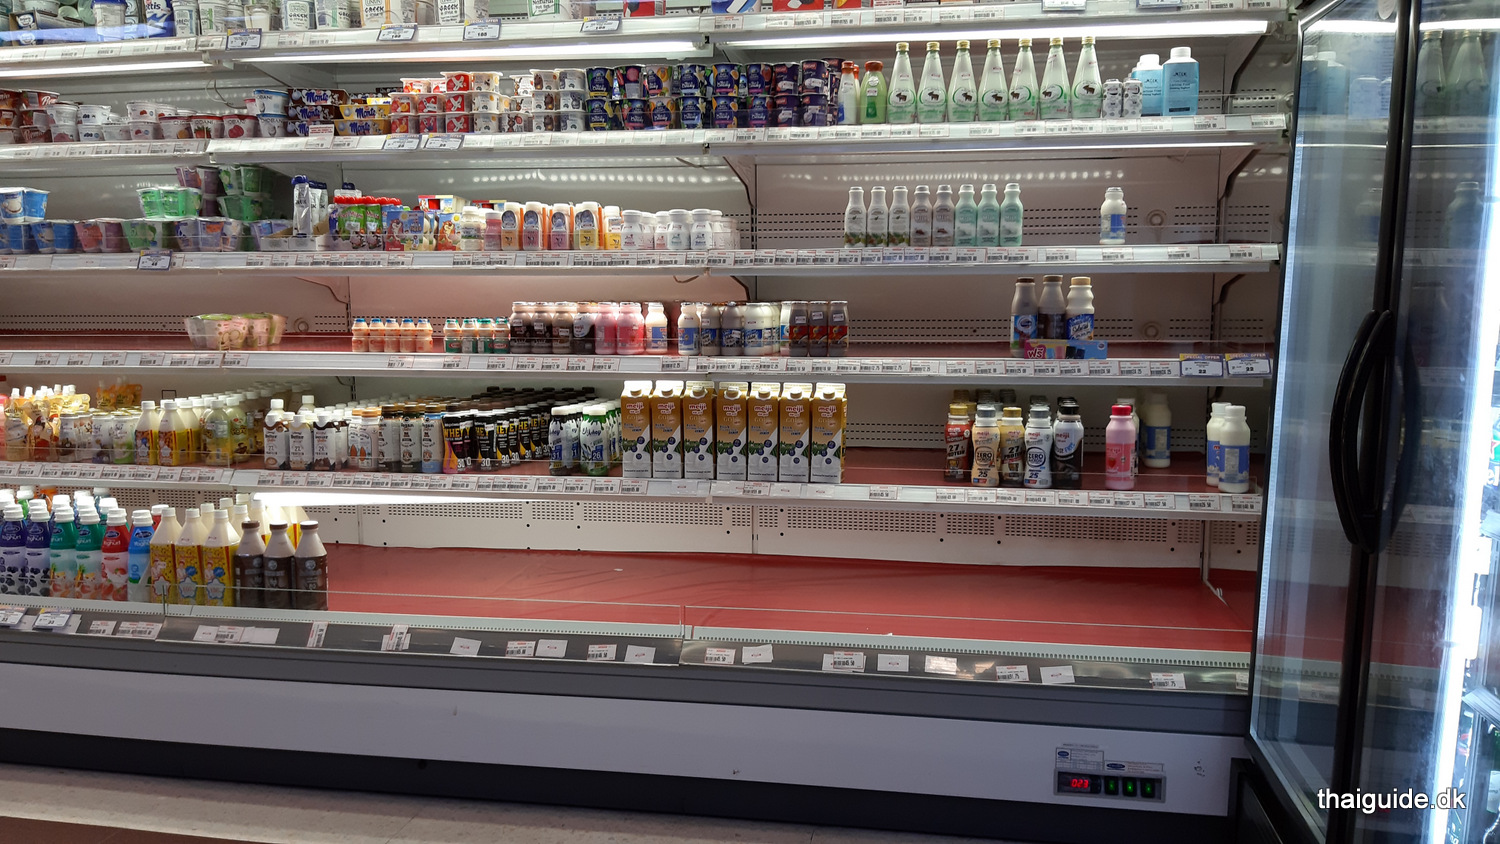 www.thaiguide.dk/images/forum/covid19/foodland-16032020.jpg